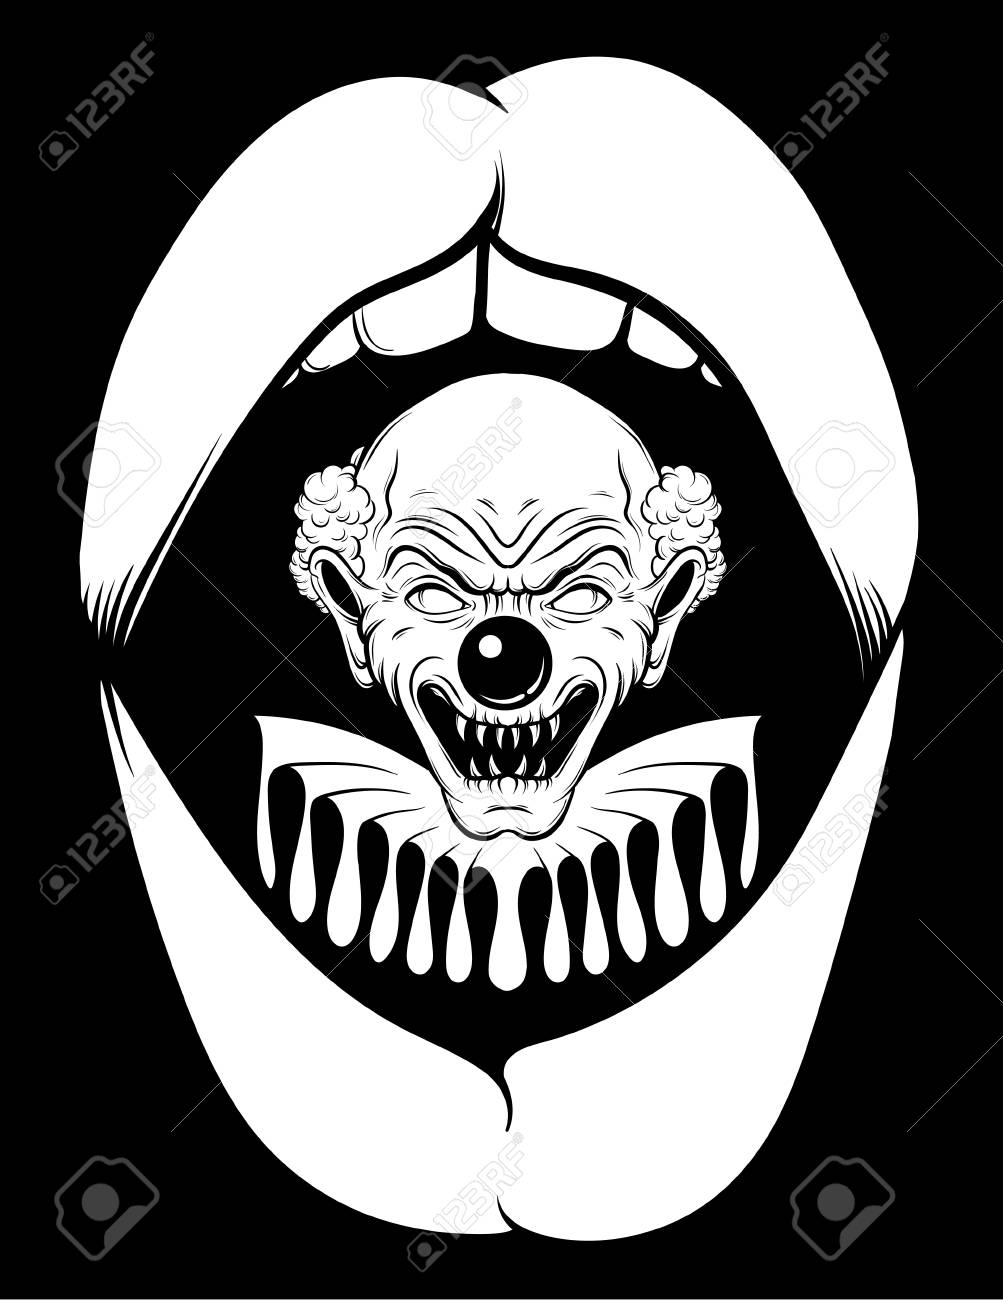 1003x1300 Vector Hand Drawn Illustration Of Angry Clown In Open Screaming